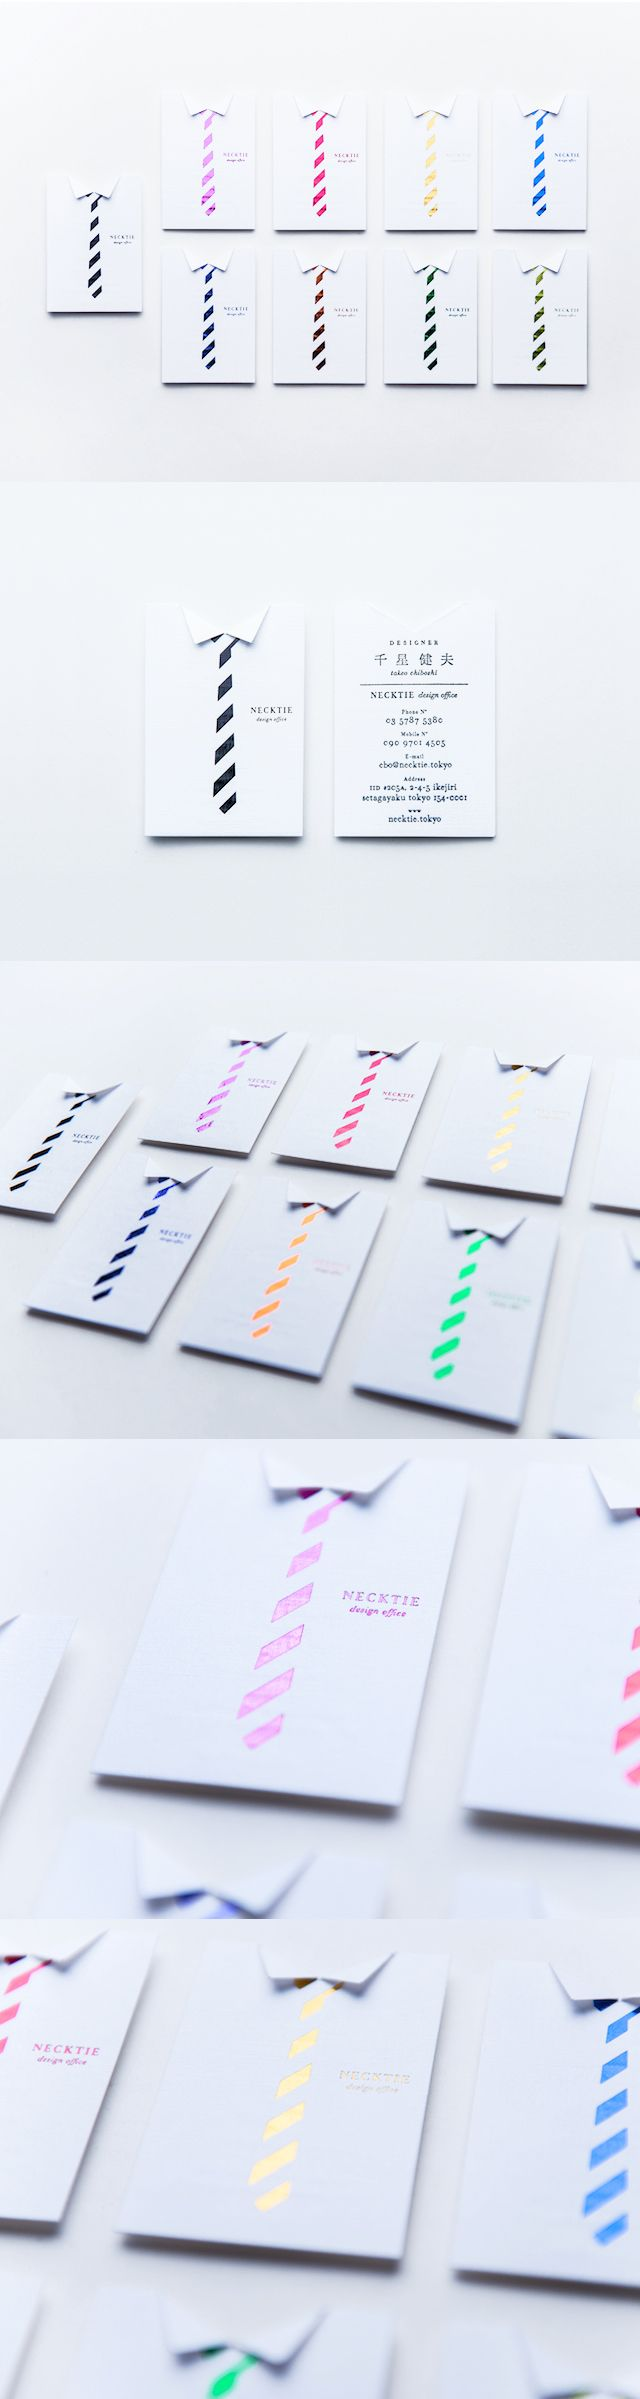 Necktie Business Cards PD